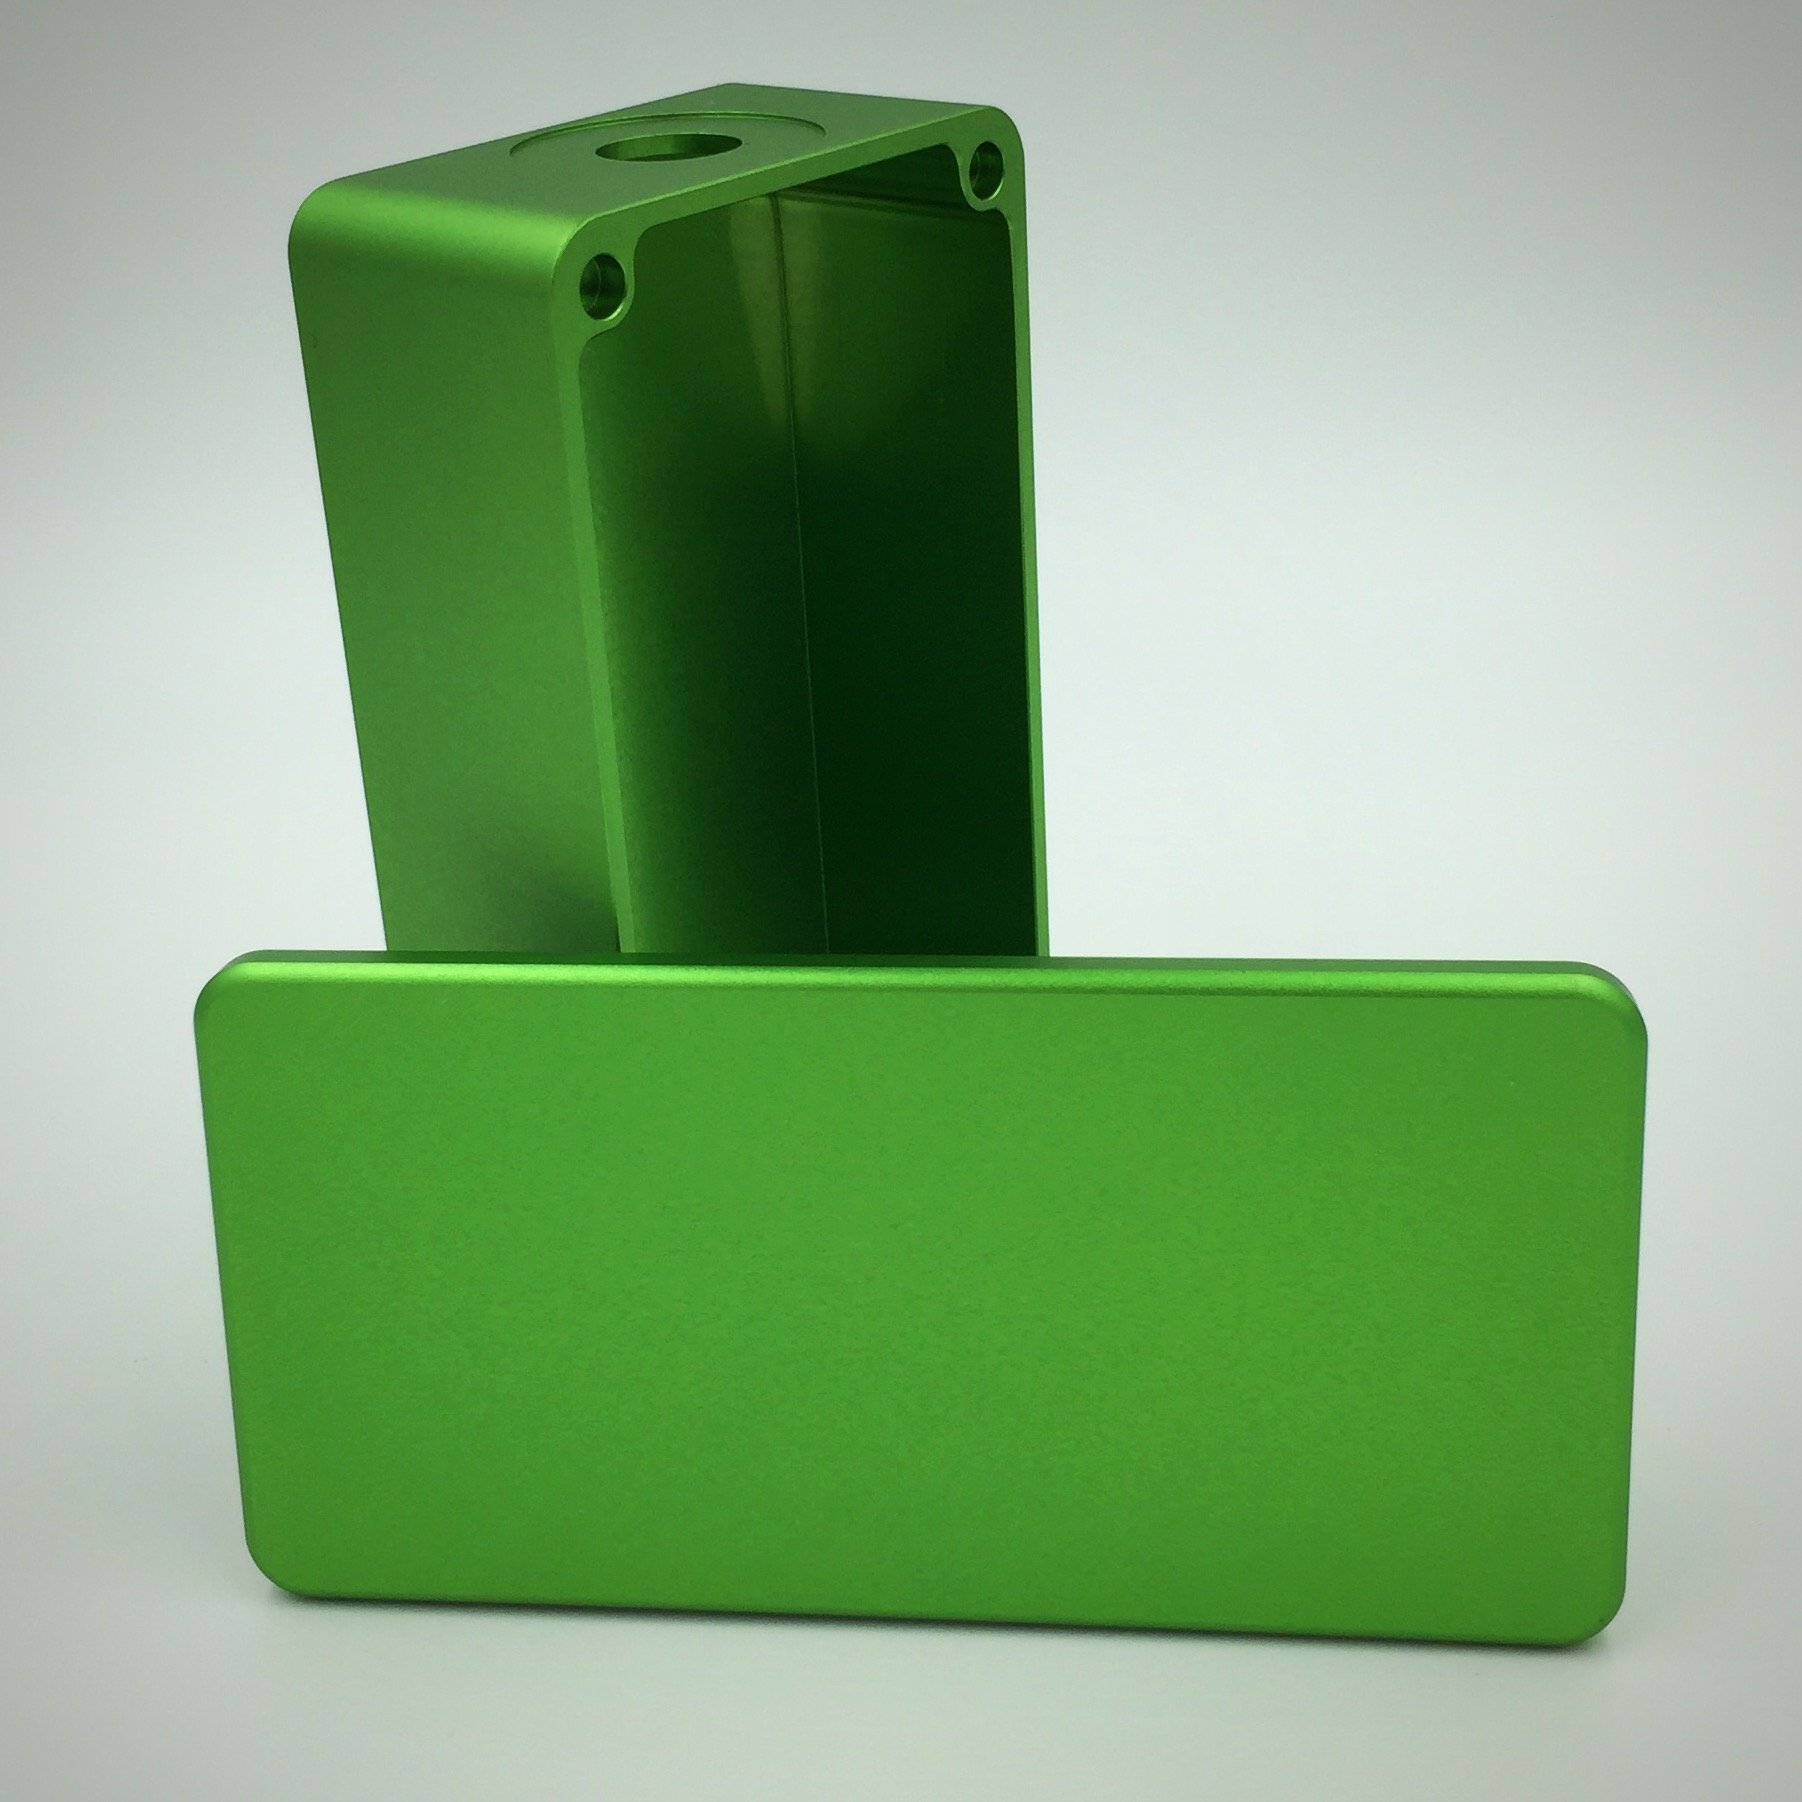 "BMG Mods ""1590g Tall"" CNC Milled Anodized Aluminum 18650 Battery Enclosure: Green (Satin Finish)"